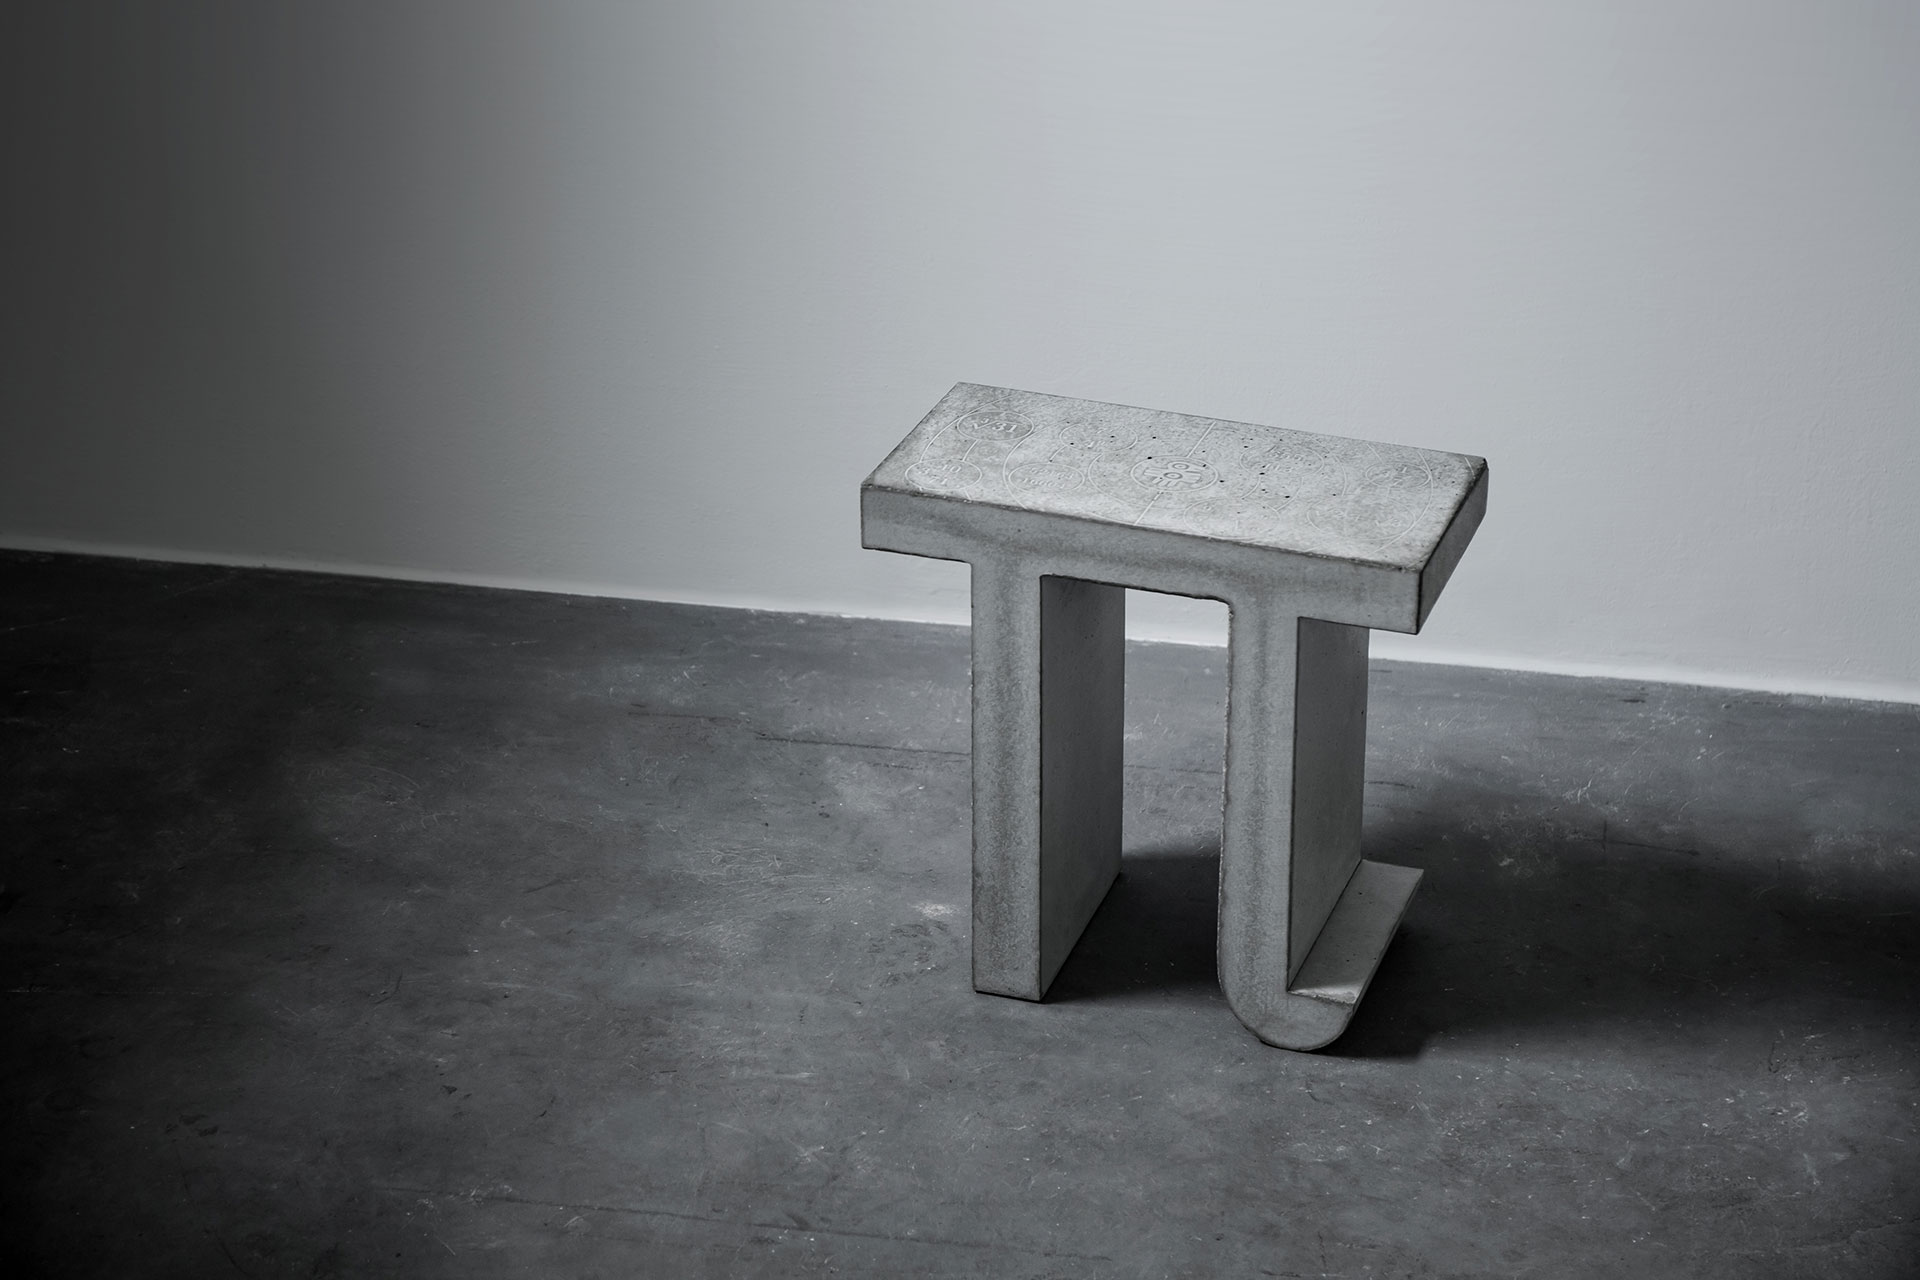 Brutalist concrete stool inspired by Pi number